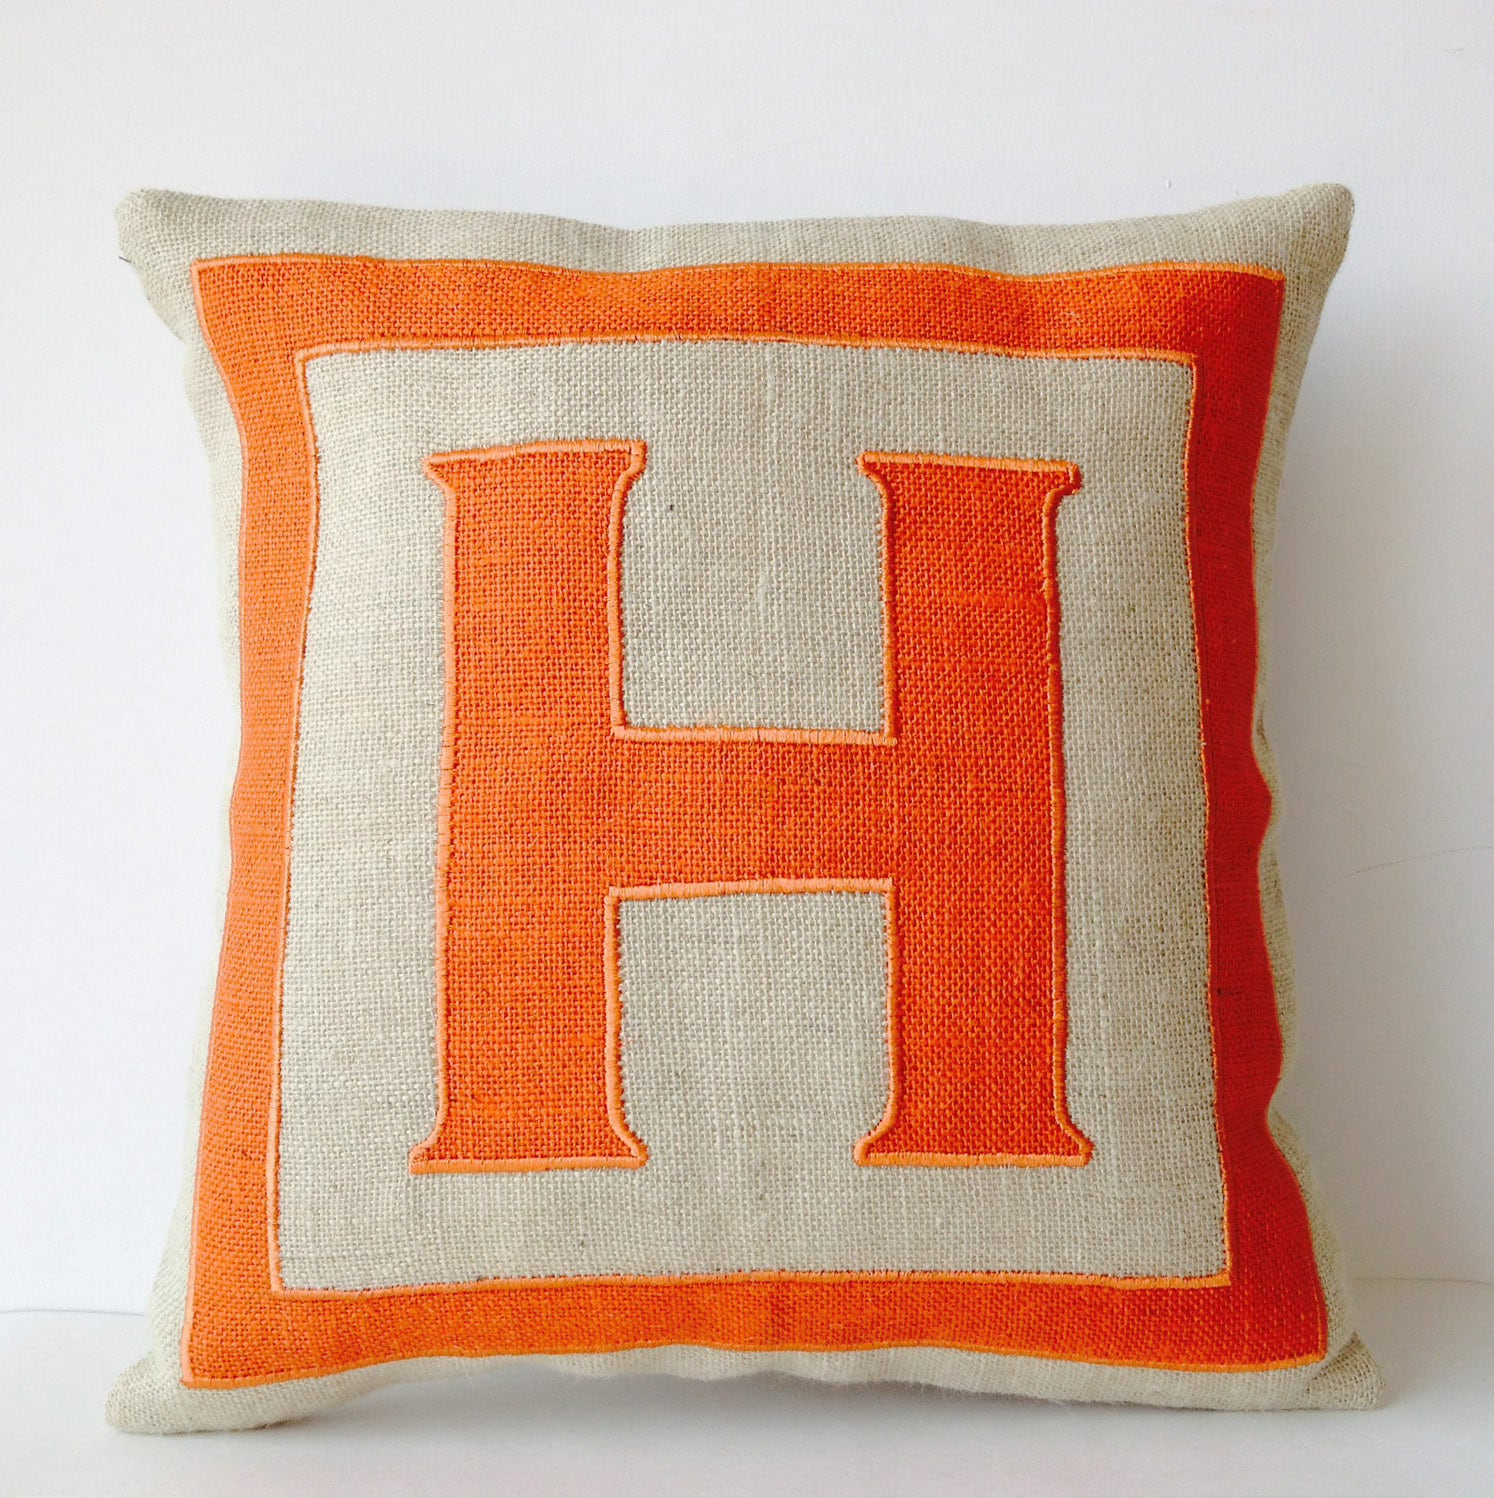 How To Make A Monogram Throw Pillow : Personalized Monogram throw pillow Burlap pillows Orange